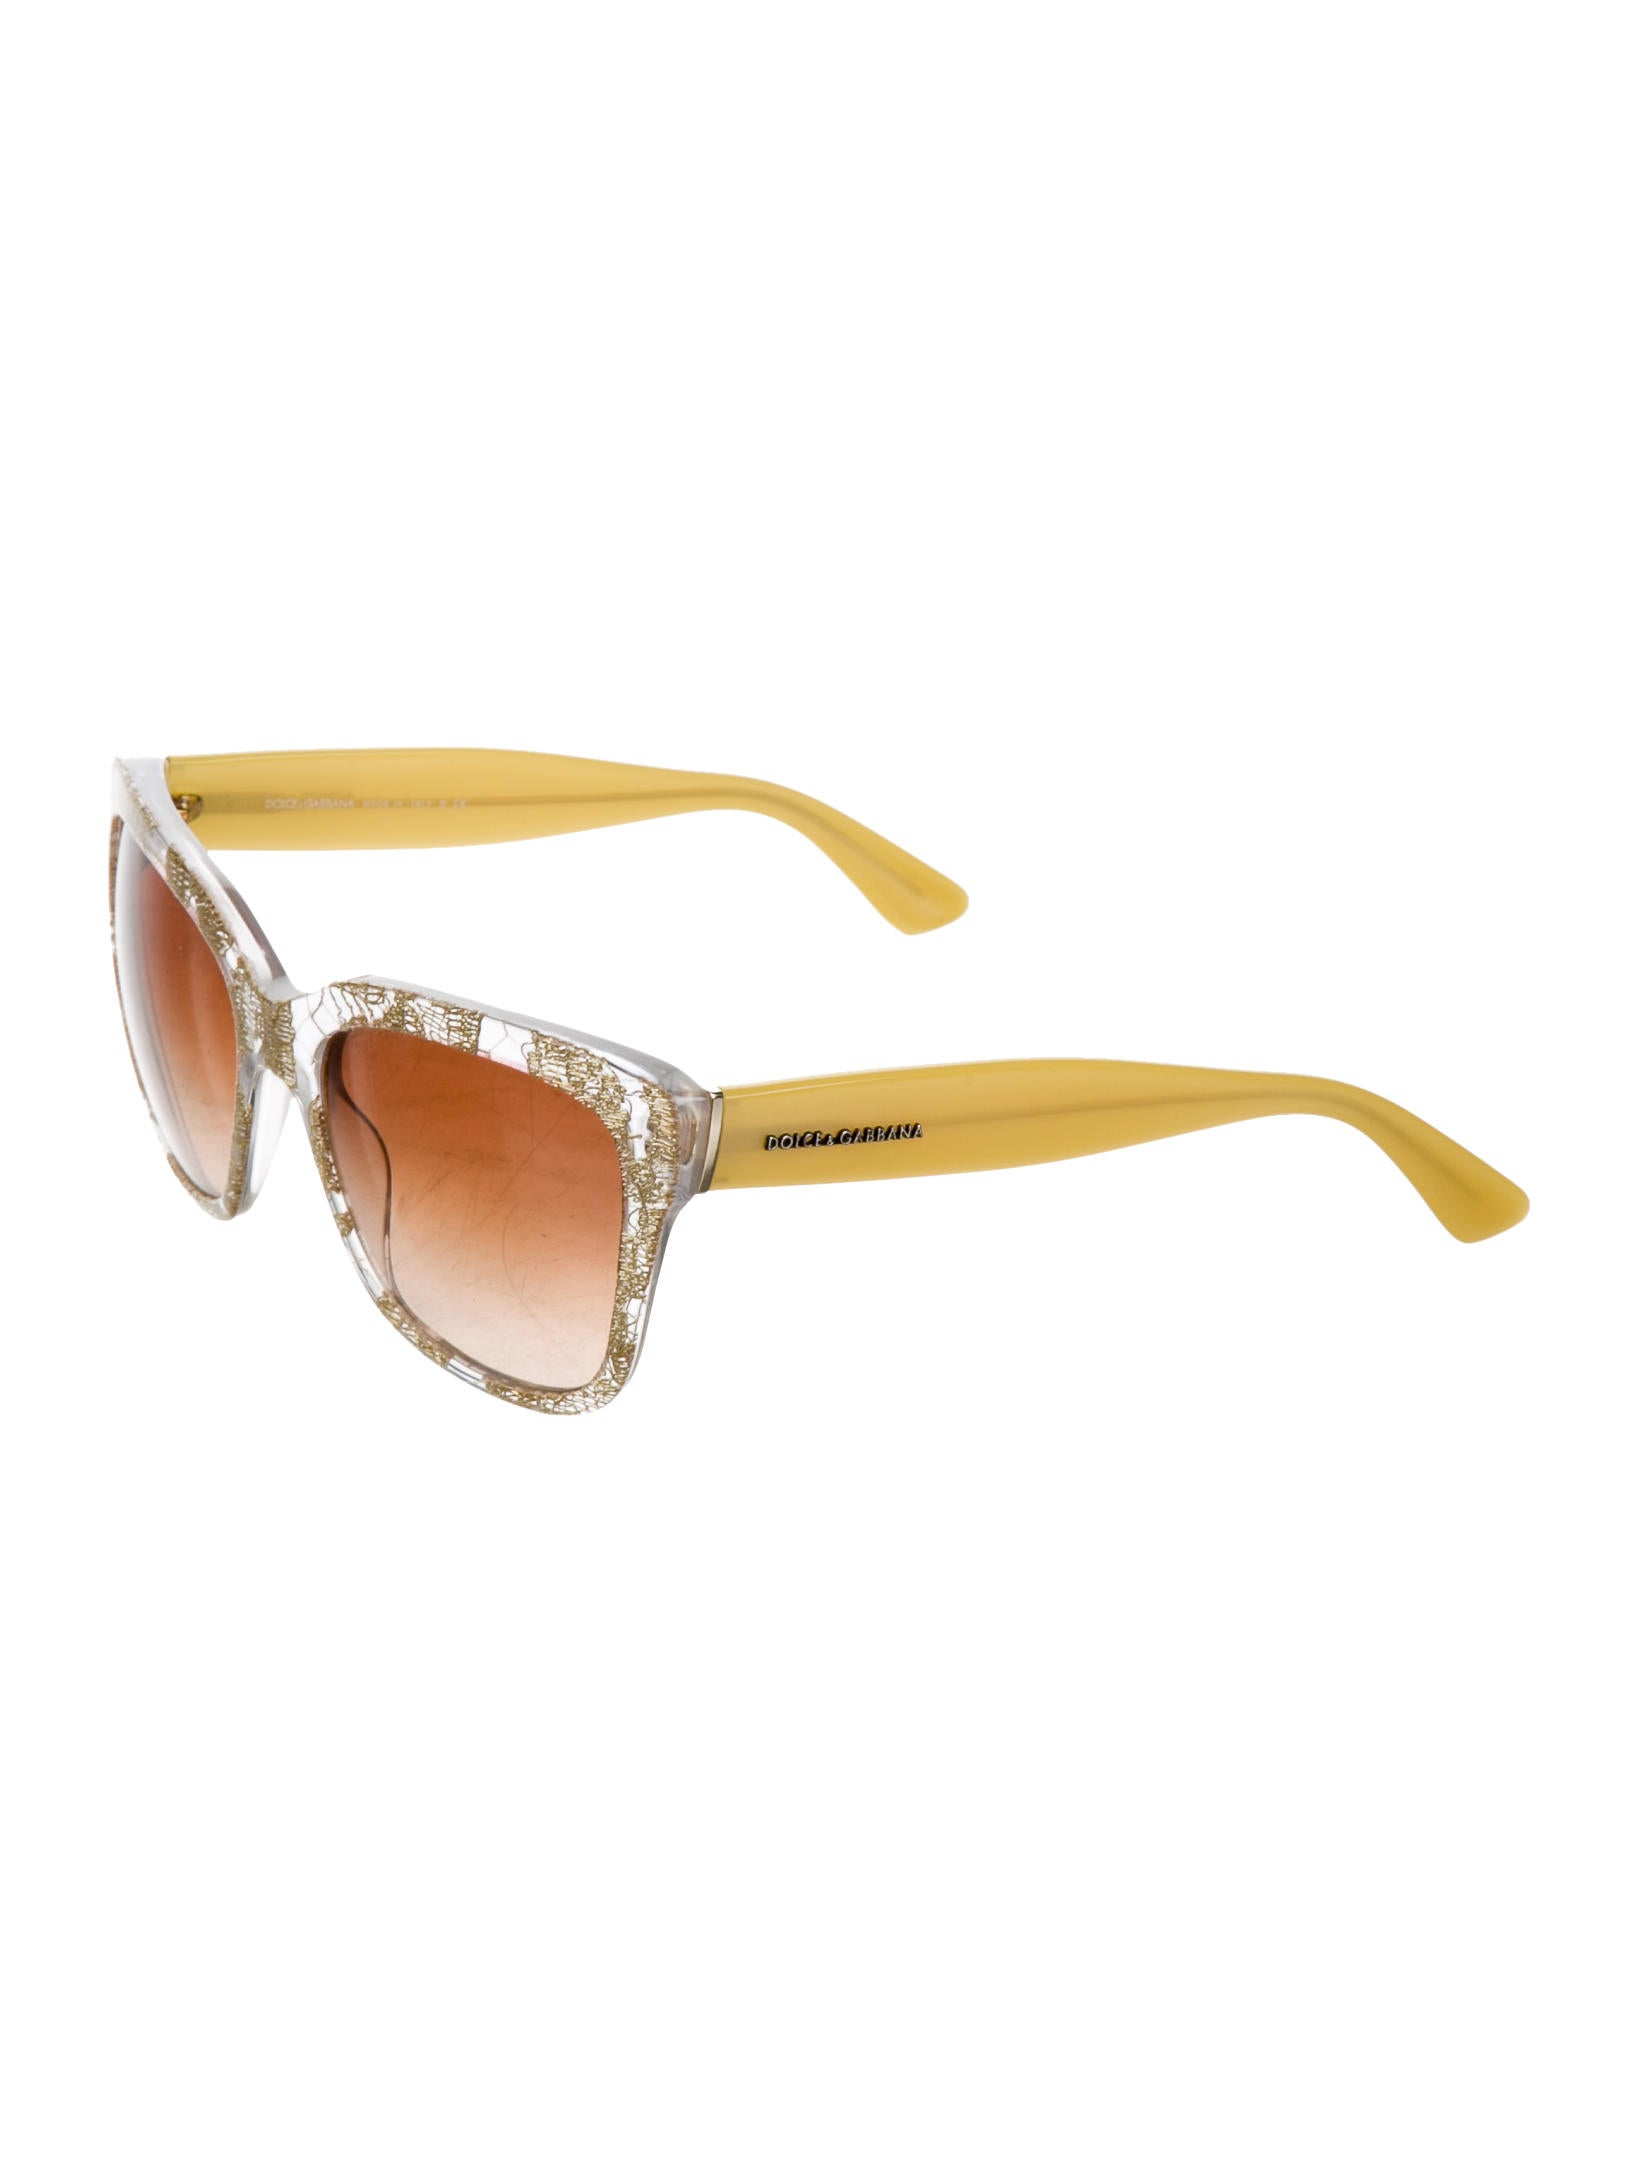 Dolce & Gabbana Lace Clear Sunglasses - Accessories ...